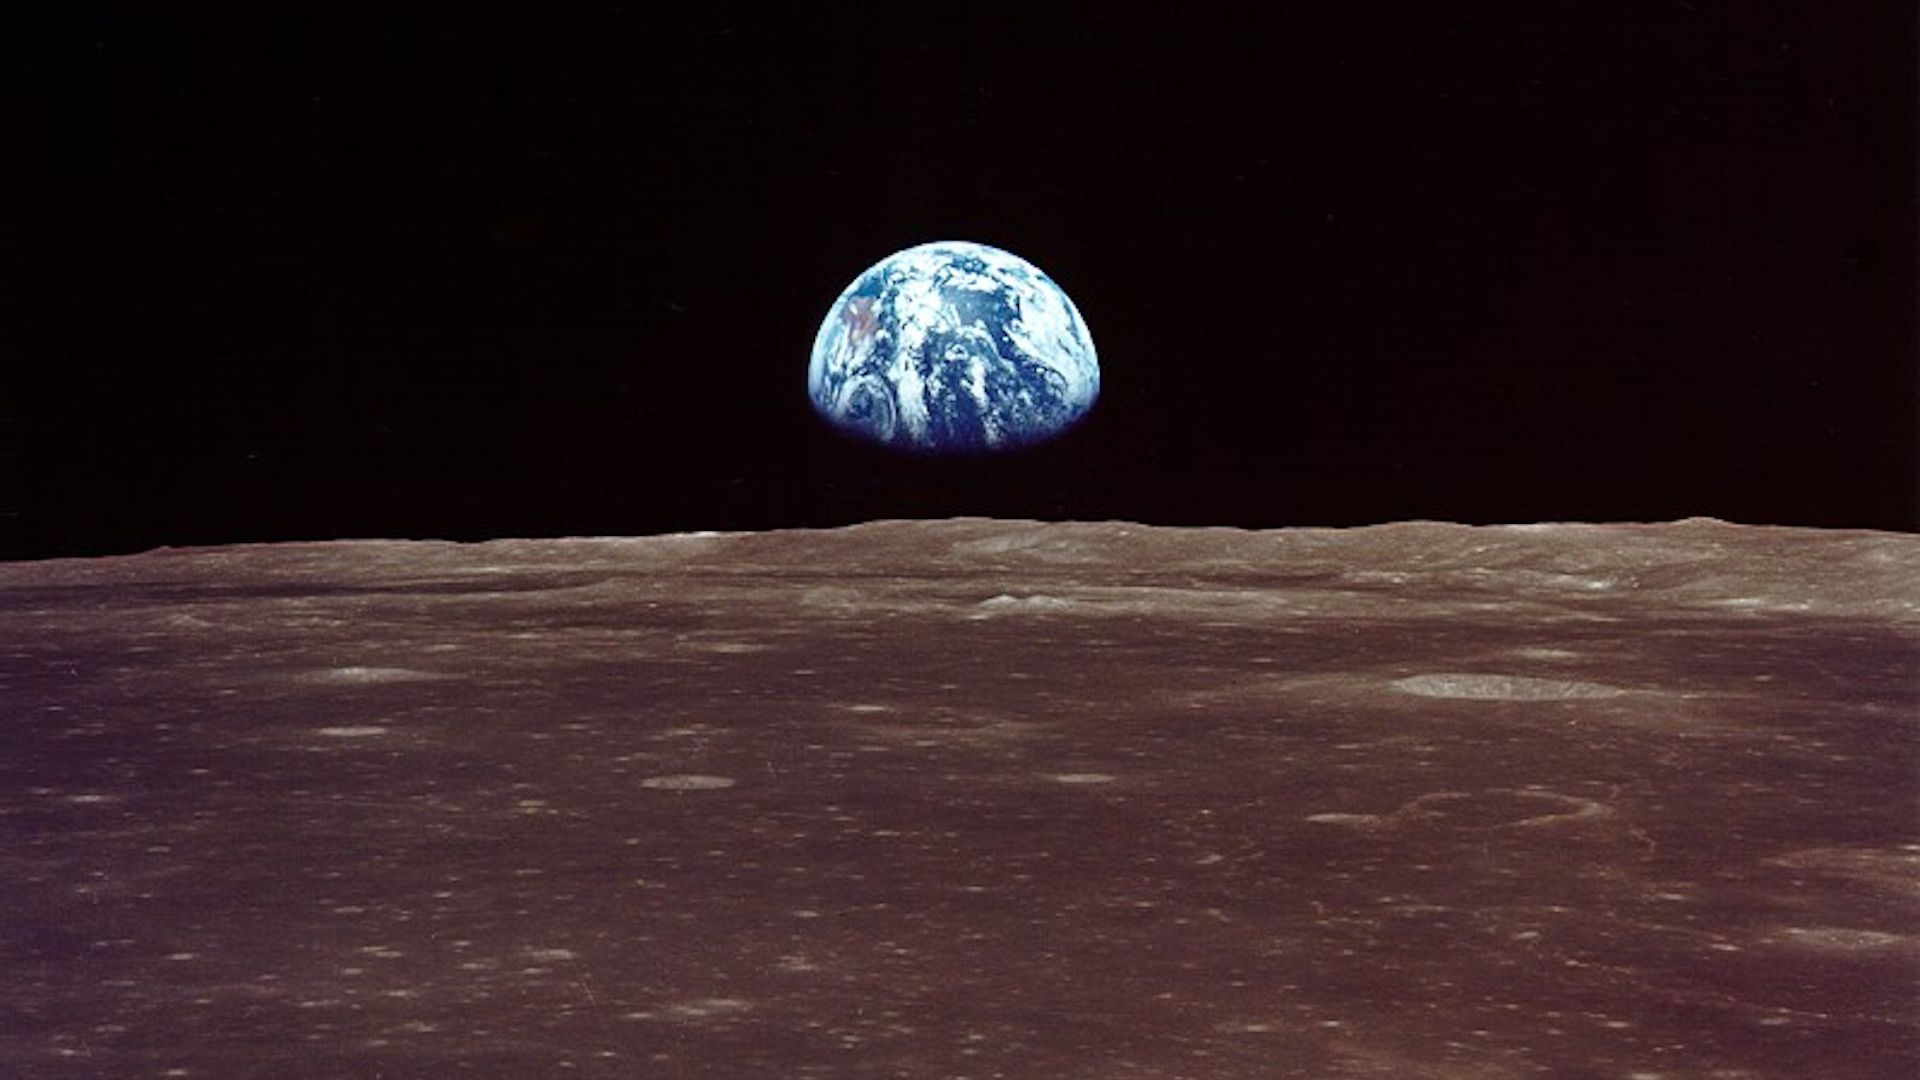 The Earth appearing over the limb of the Moon.